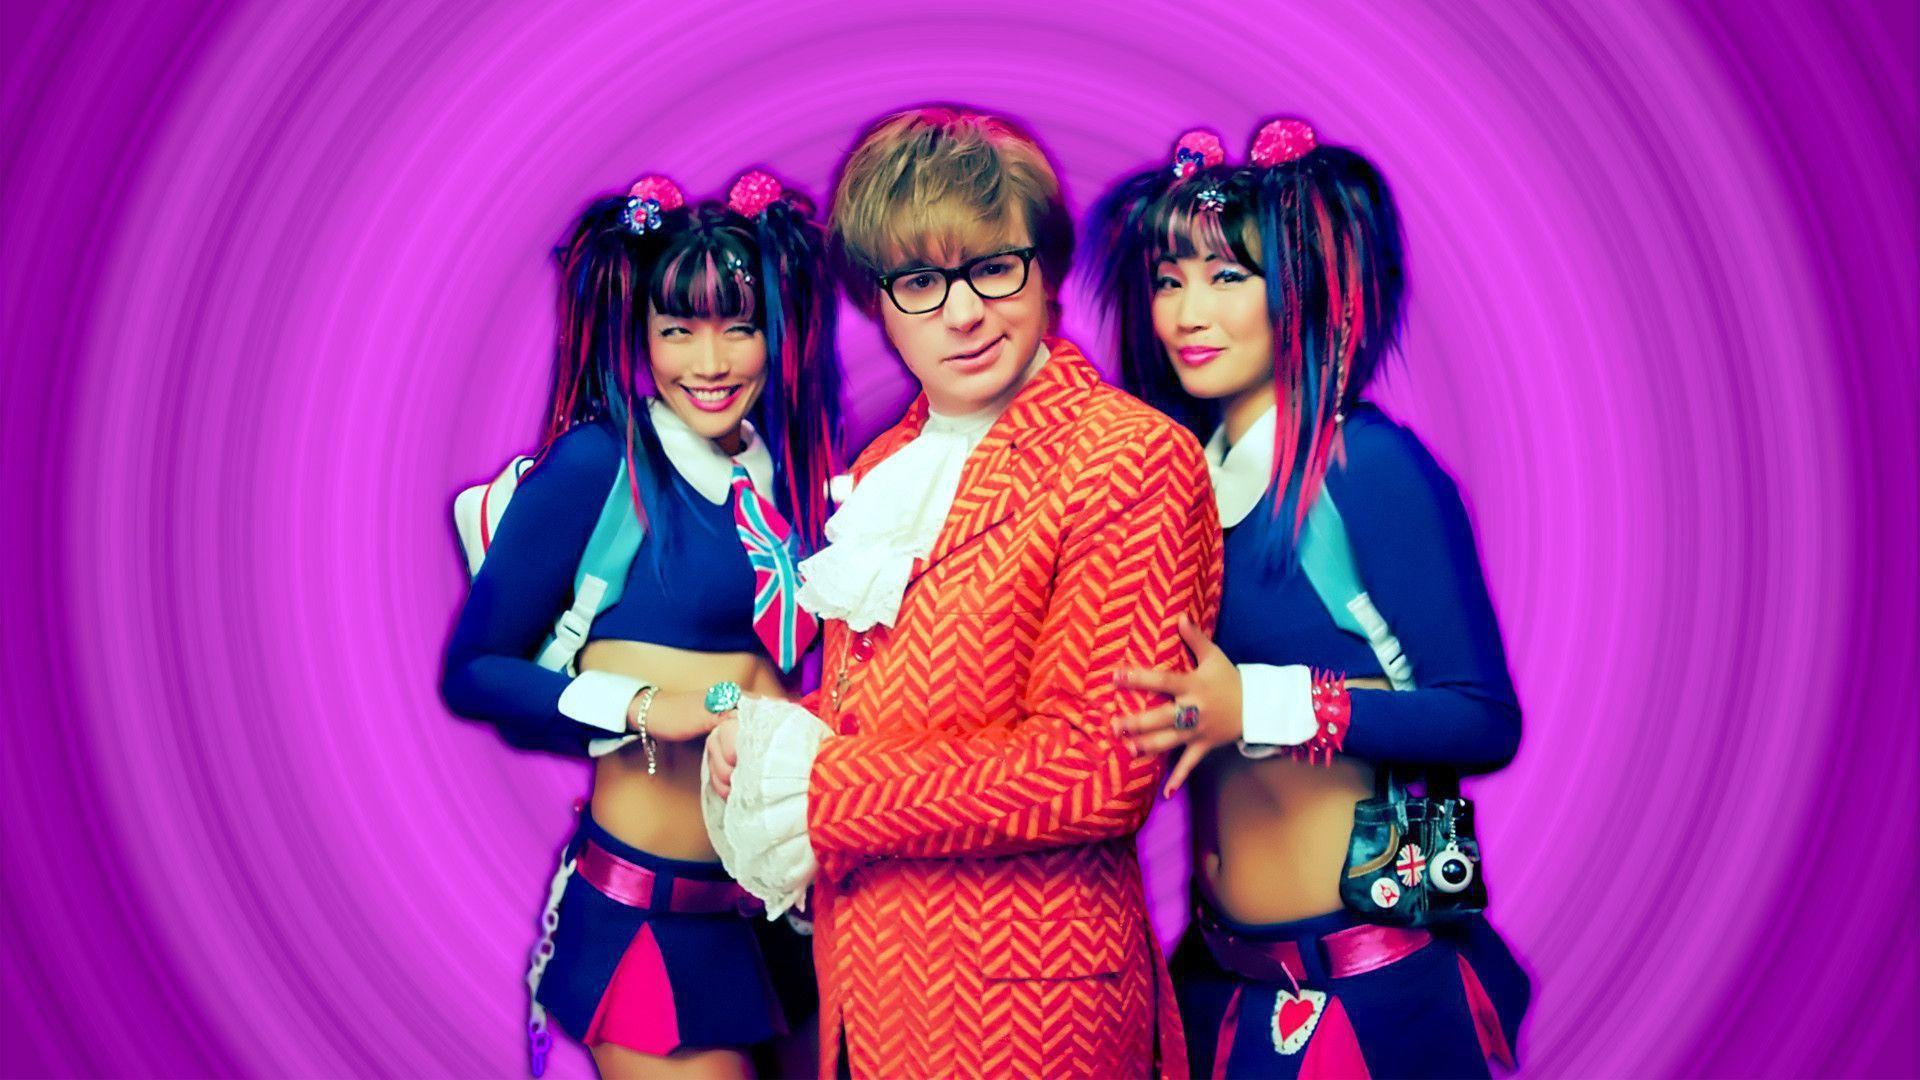 Austin Powers Wallpaper Backgrounds